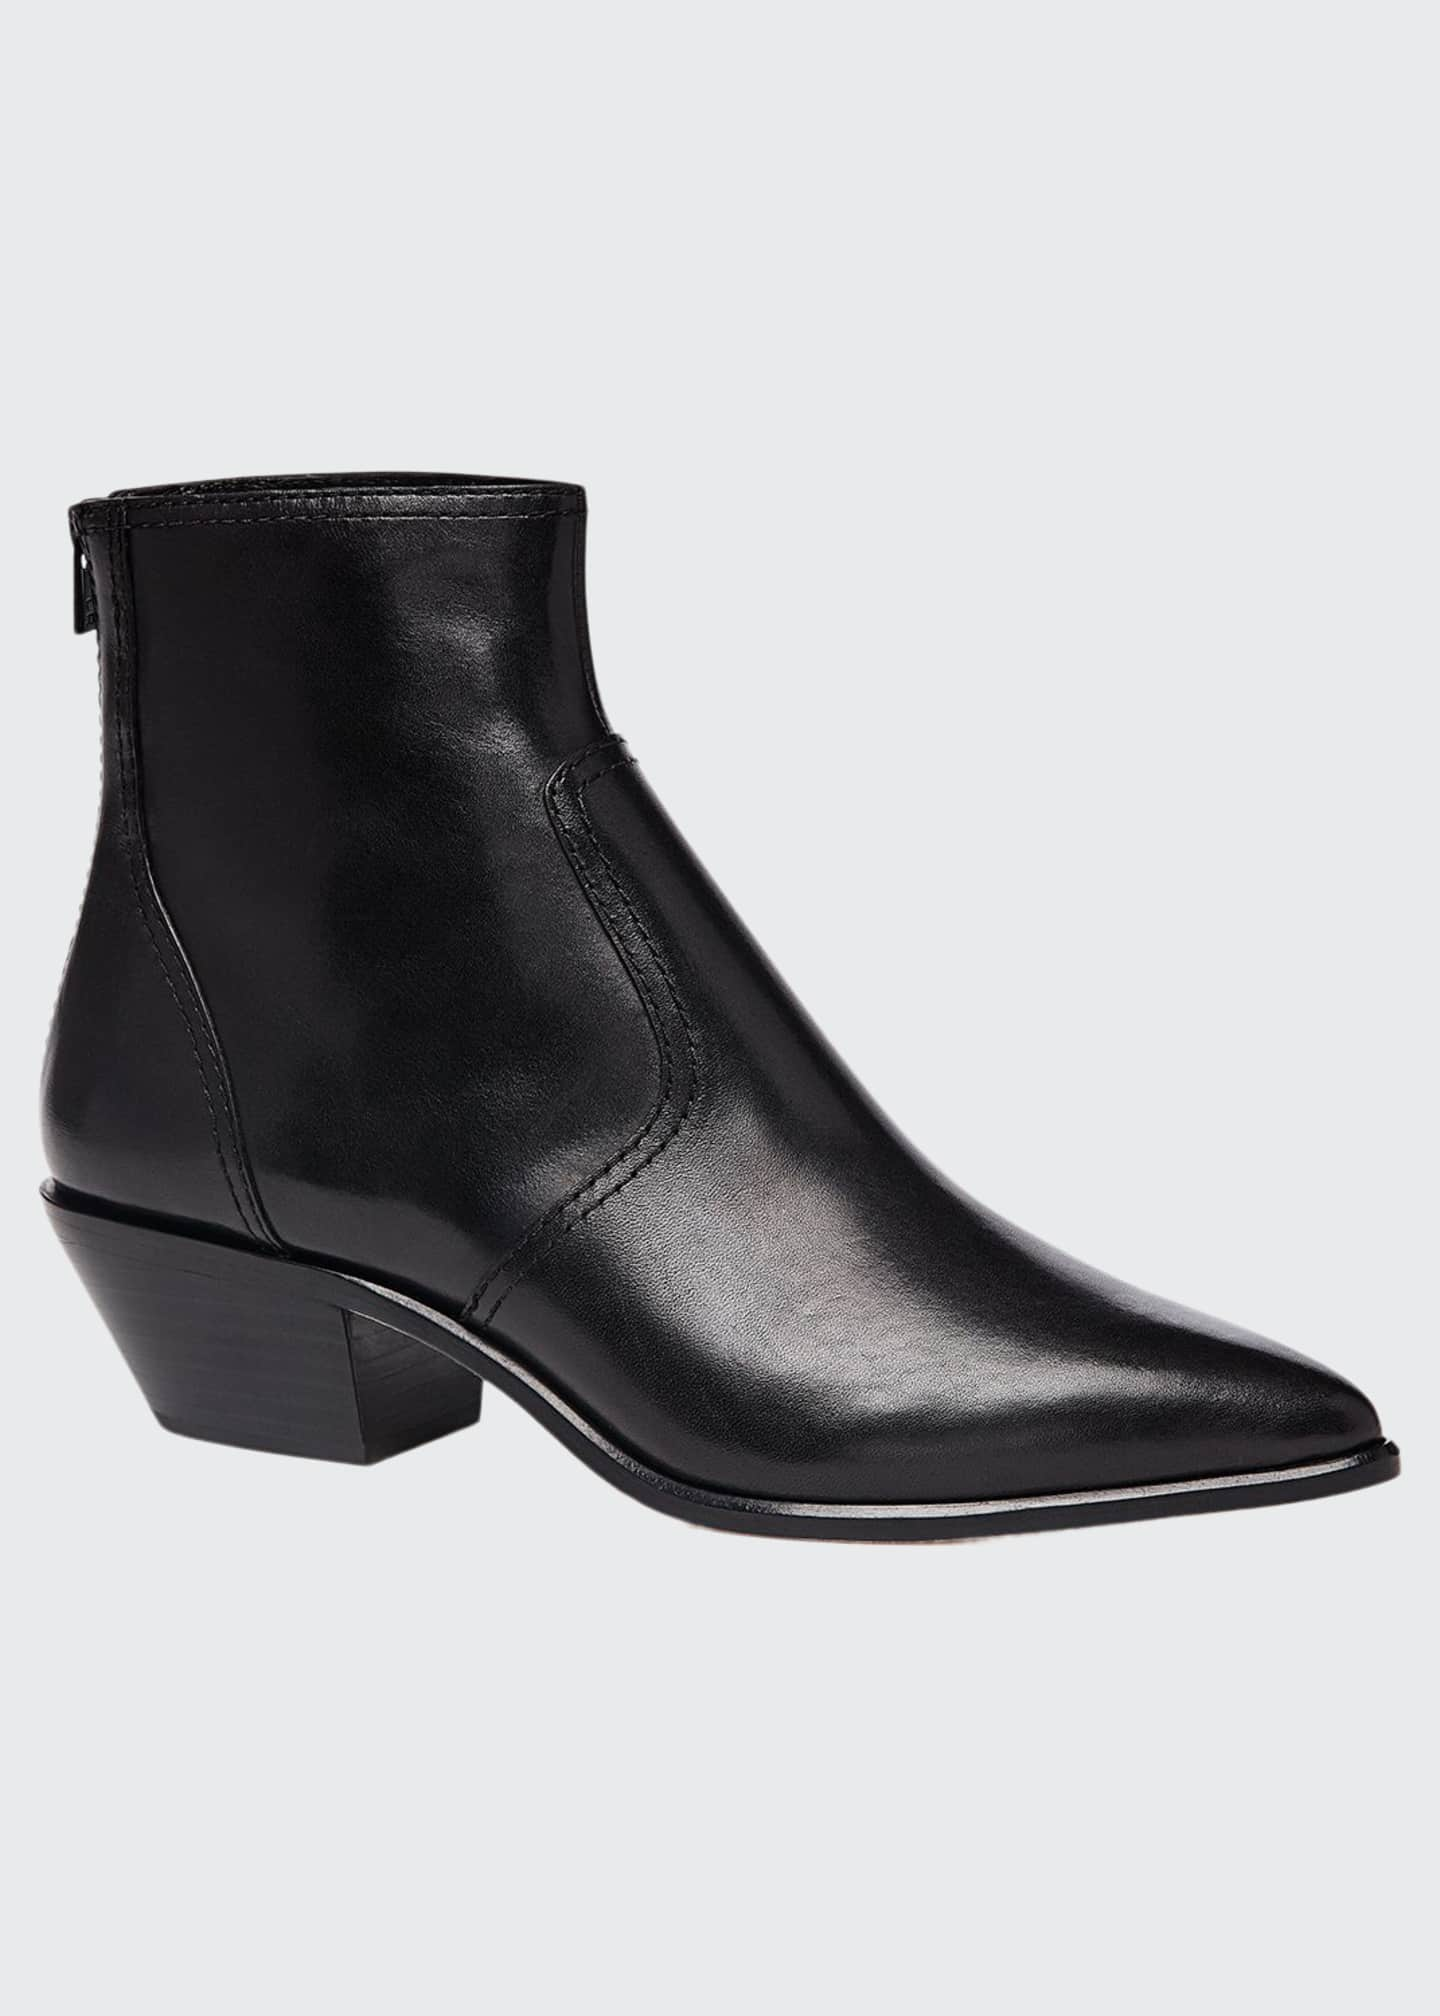 Loeffler Randall Joni Leather Western Booties